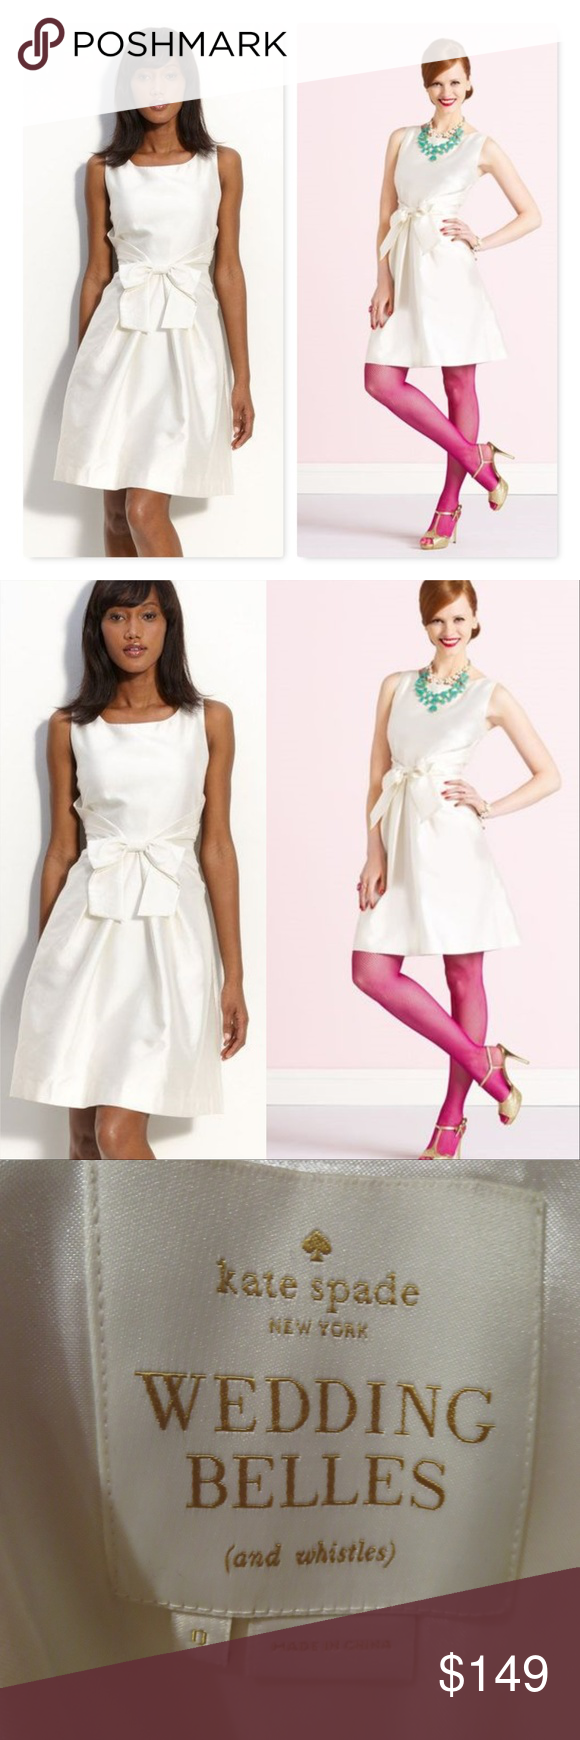 Kate Spade Wedding Belles Jillian Dress Bow Ivory Jillian Dress Dresses Dress With Bow